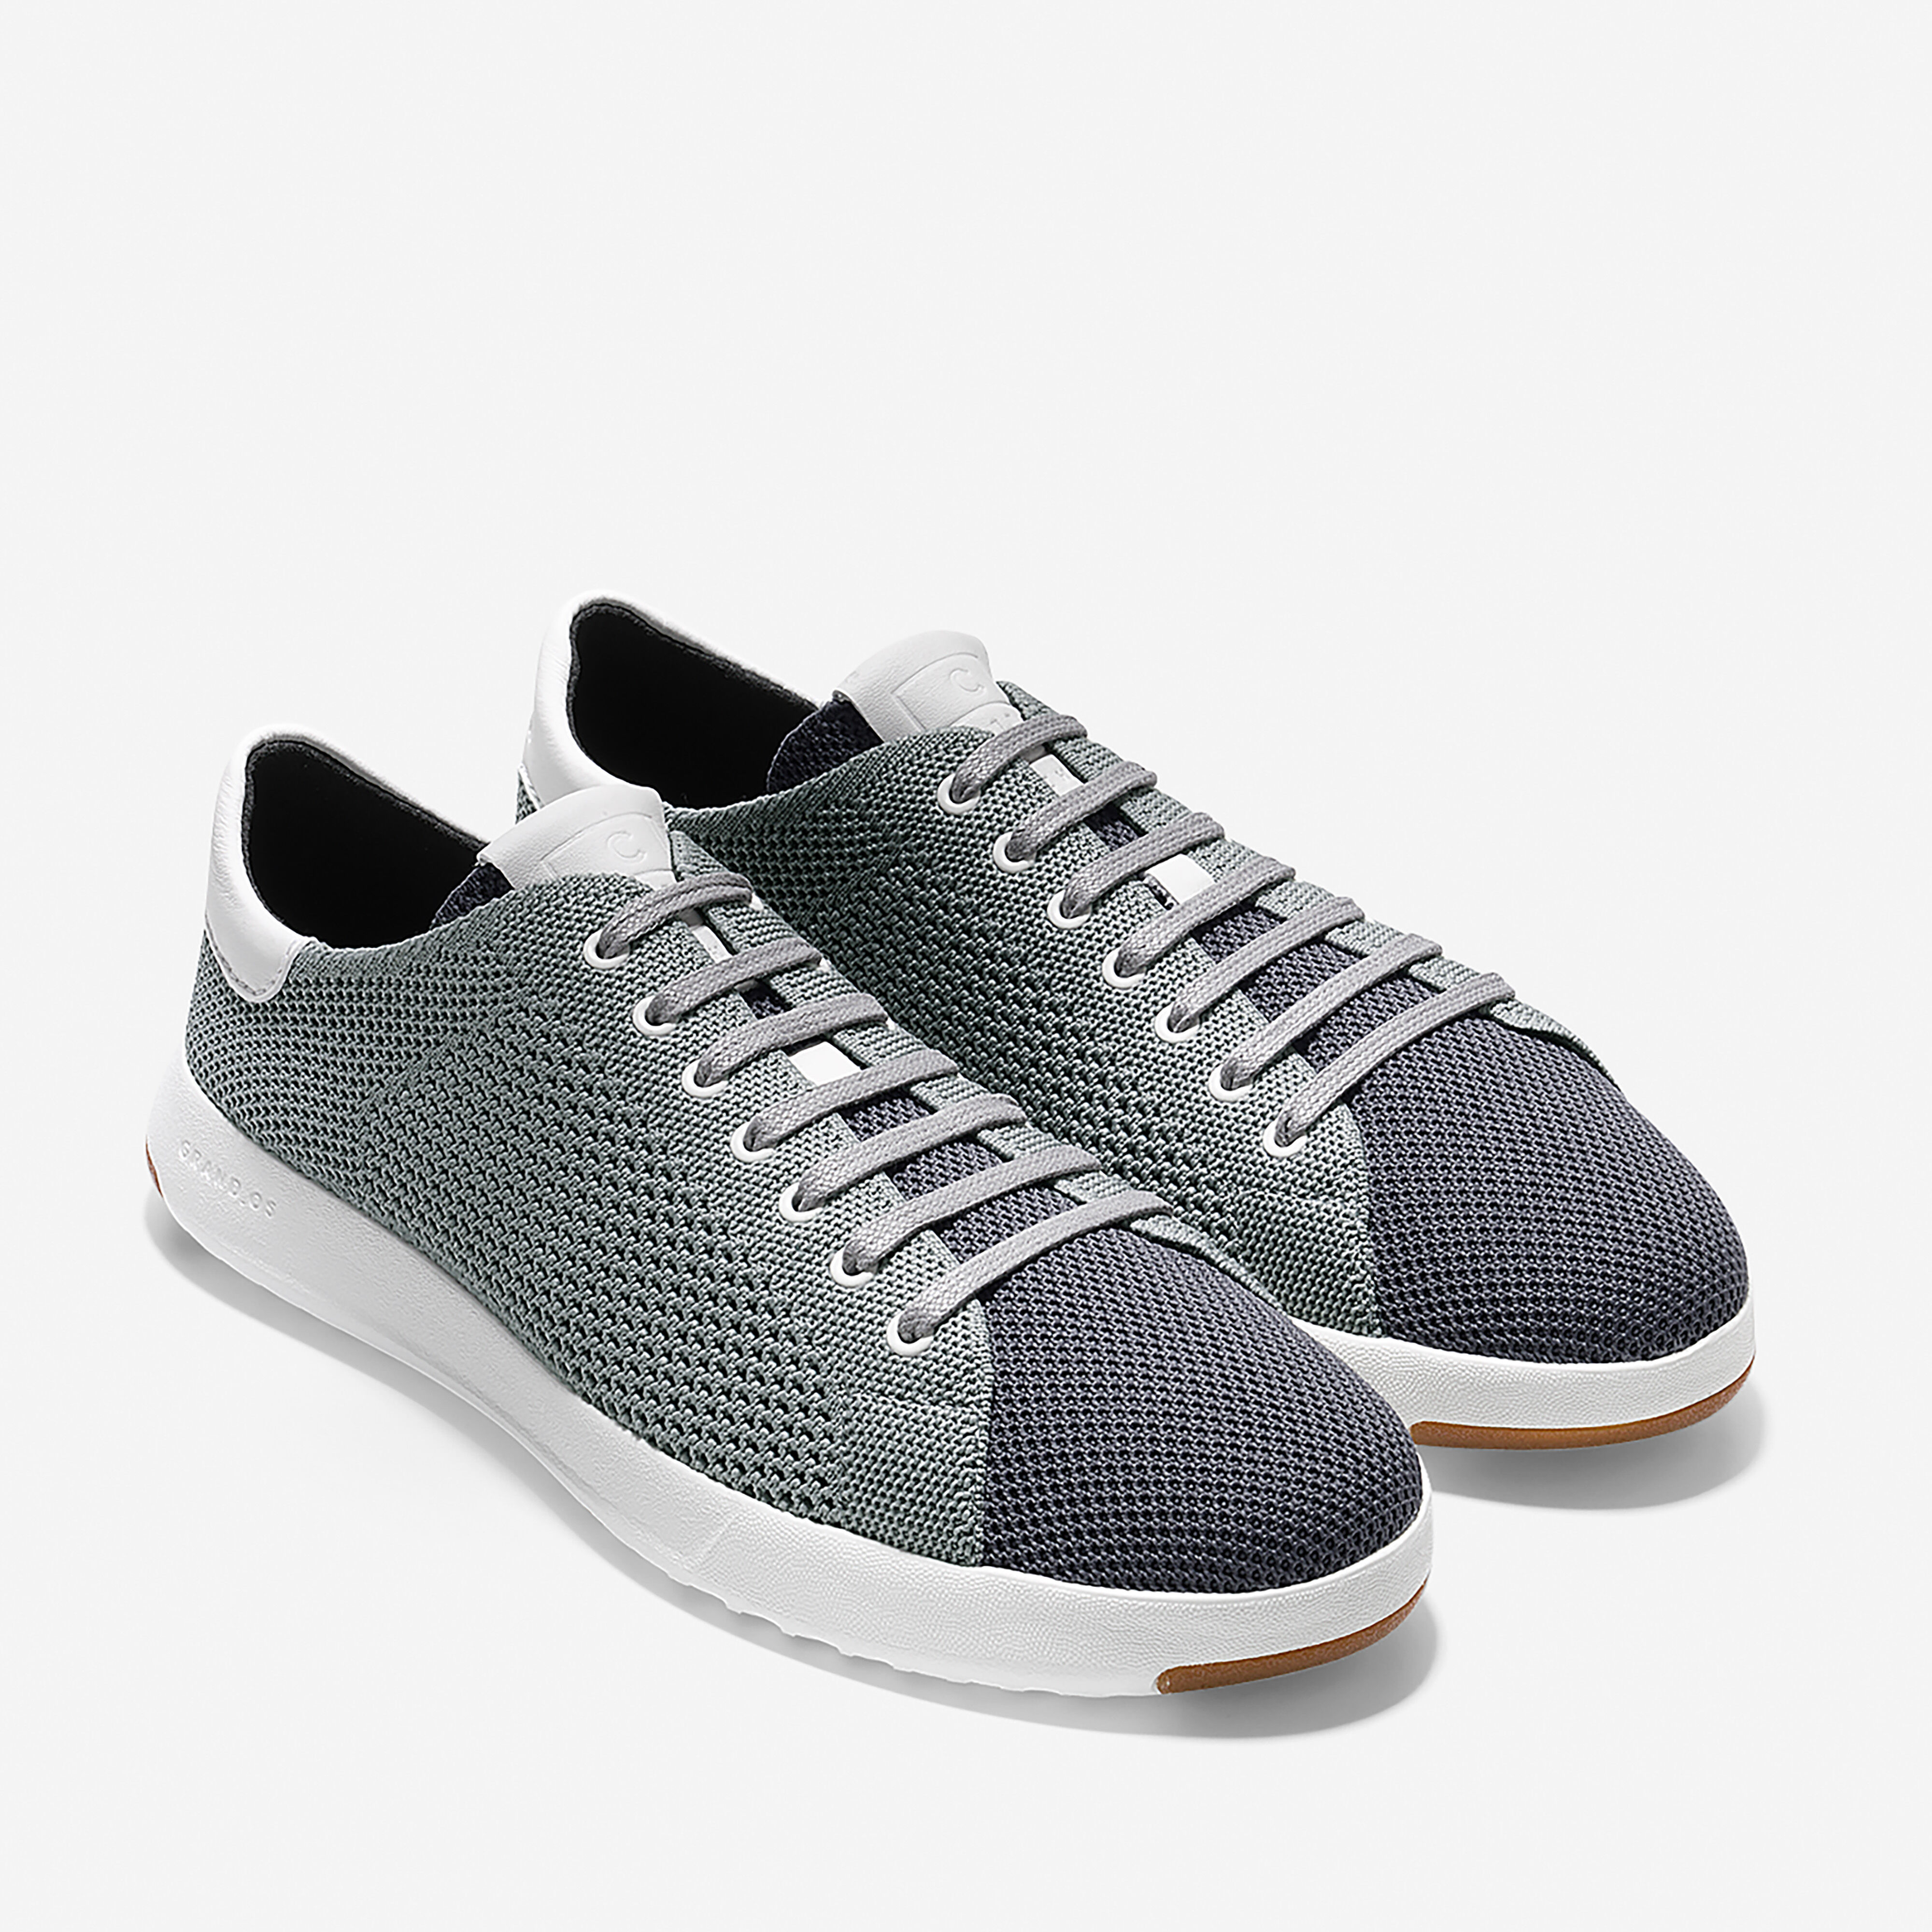 Cole Haan Grandpro Stitch Magnet Sneakers 4qi8tO